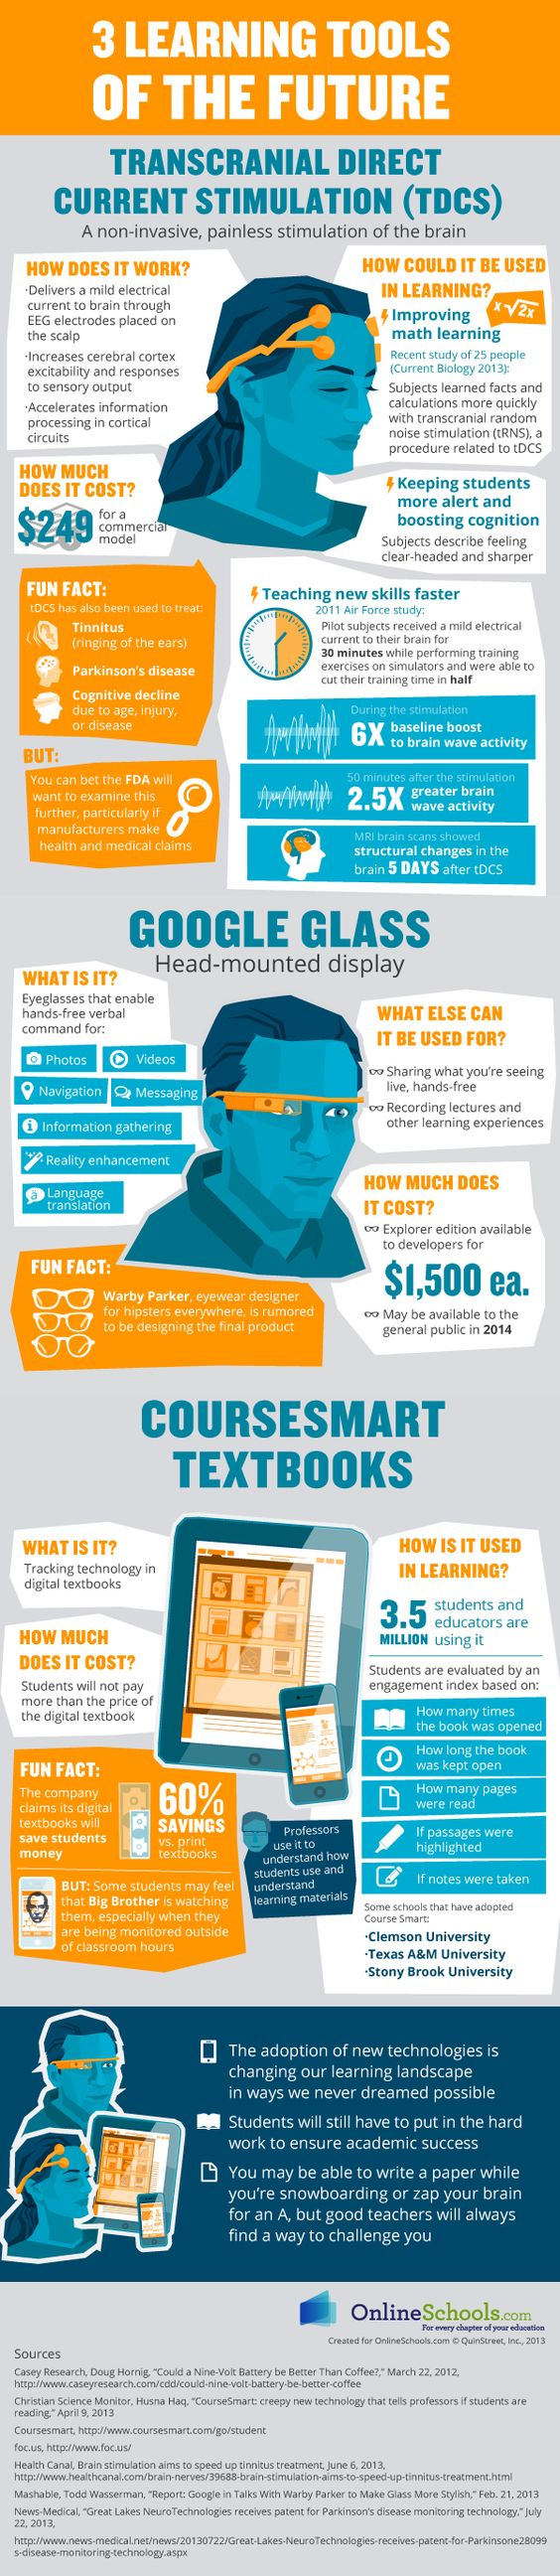 "Future Learning Tools Infographic | e-Learning Infographics  Not on the CPLP Knowledge Exam - yet! - but these are technologies we should be aware of as part of our ""technical literacy""!   The future is NOW!"